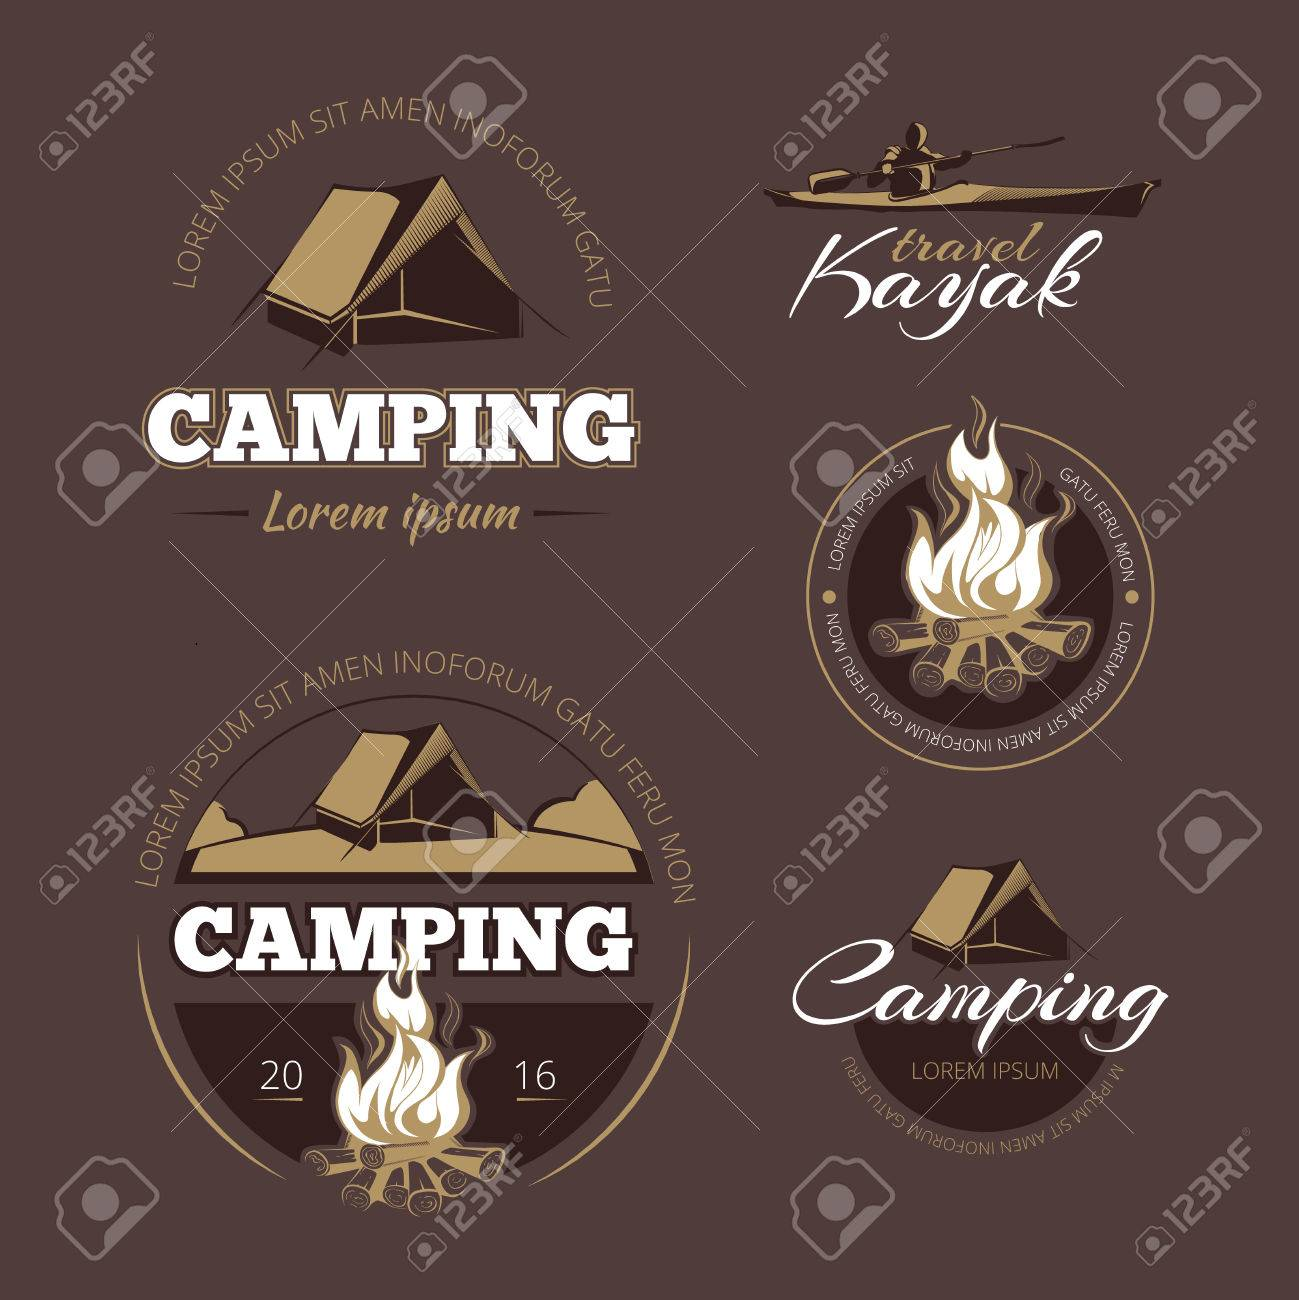 Vintage outdoor adventure and camping vector color labels set. Label outdoor camping, vintage camping, logo adventure camping illustration - 55462254